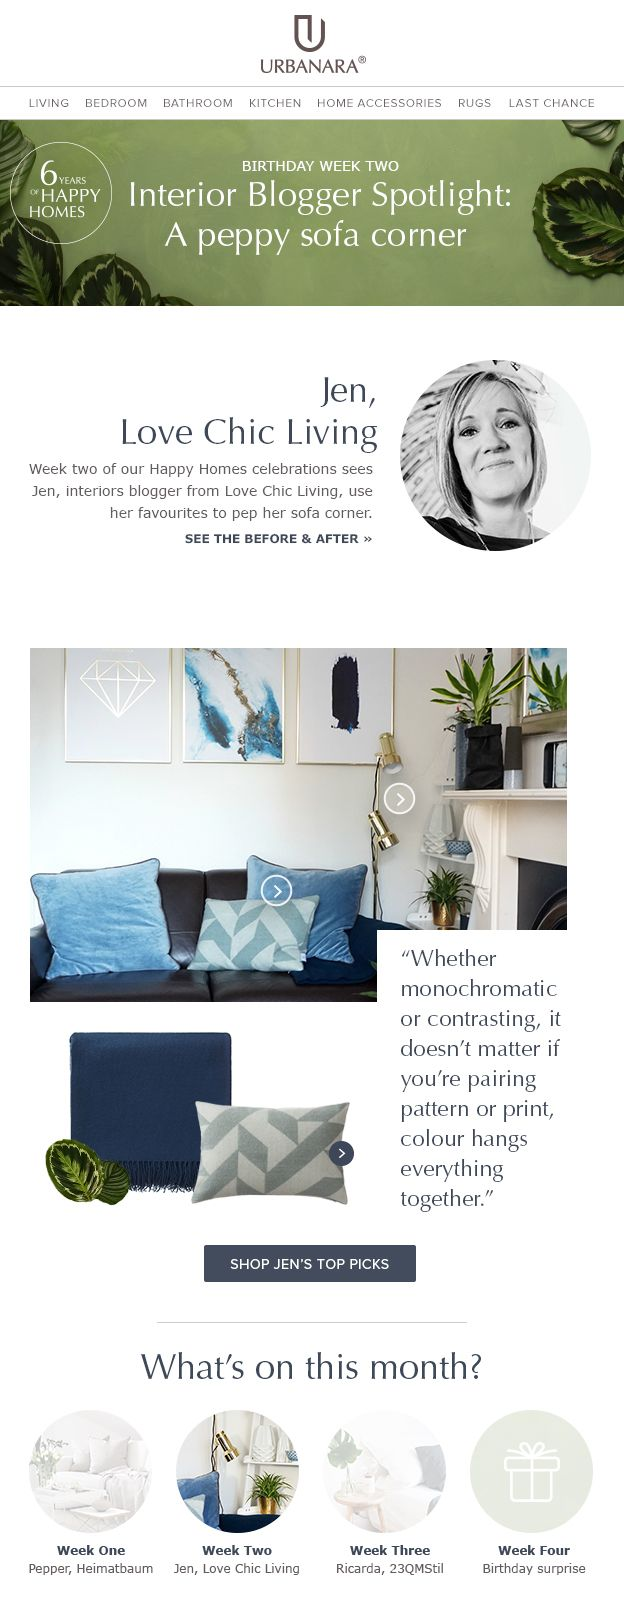 URBANARA Newsletter Template For Blogger Inspiration With Love Chic Living And Get The Look